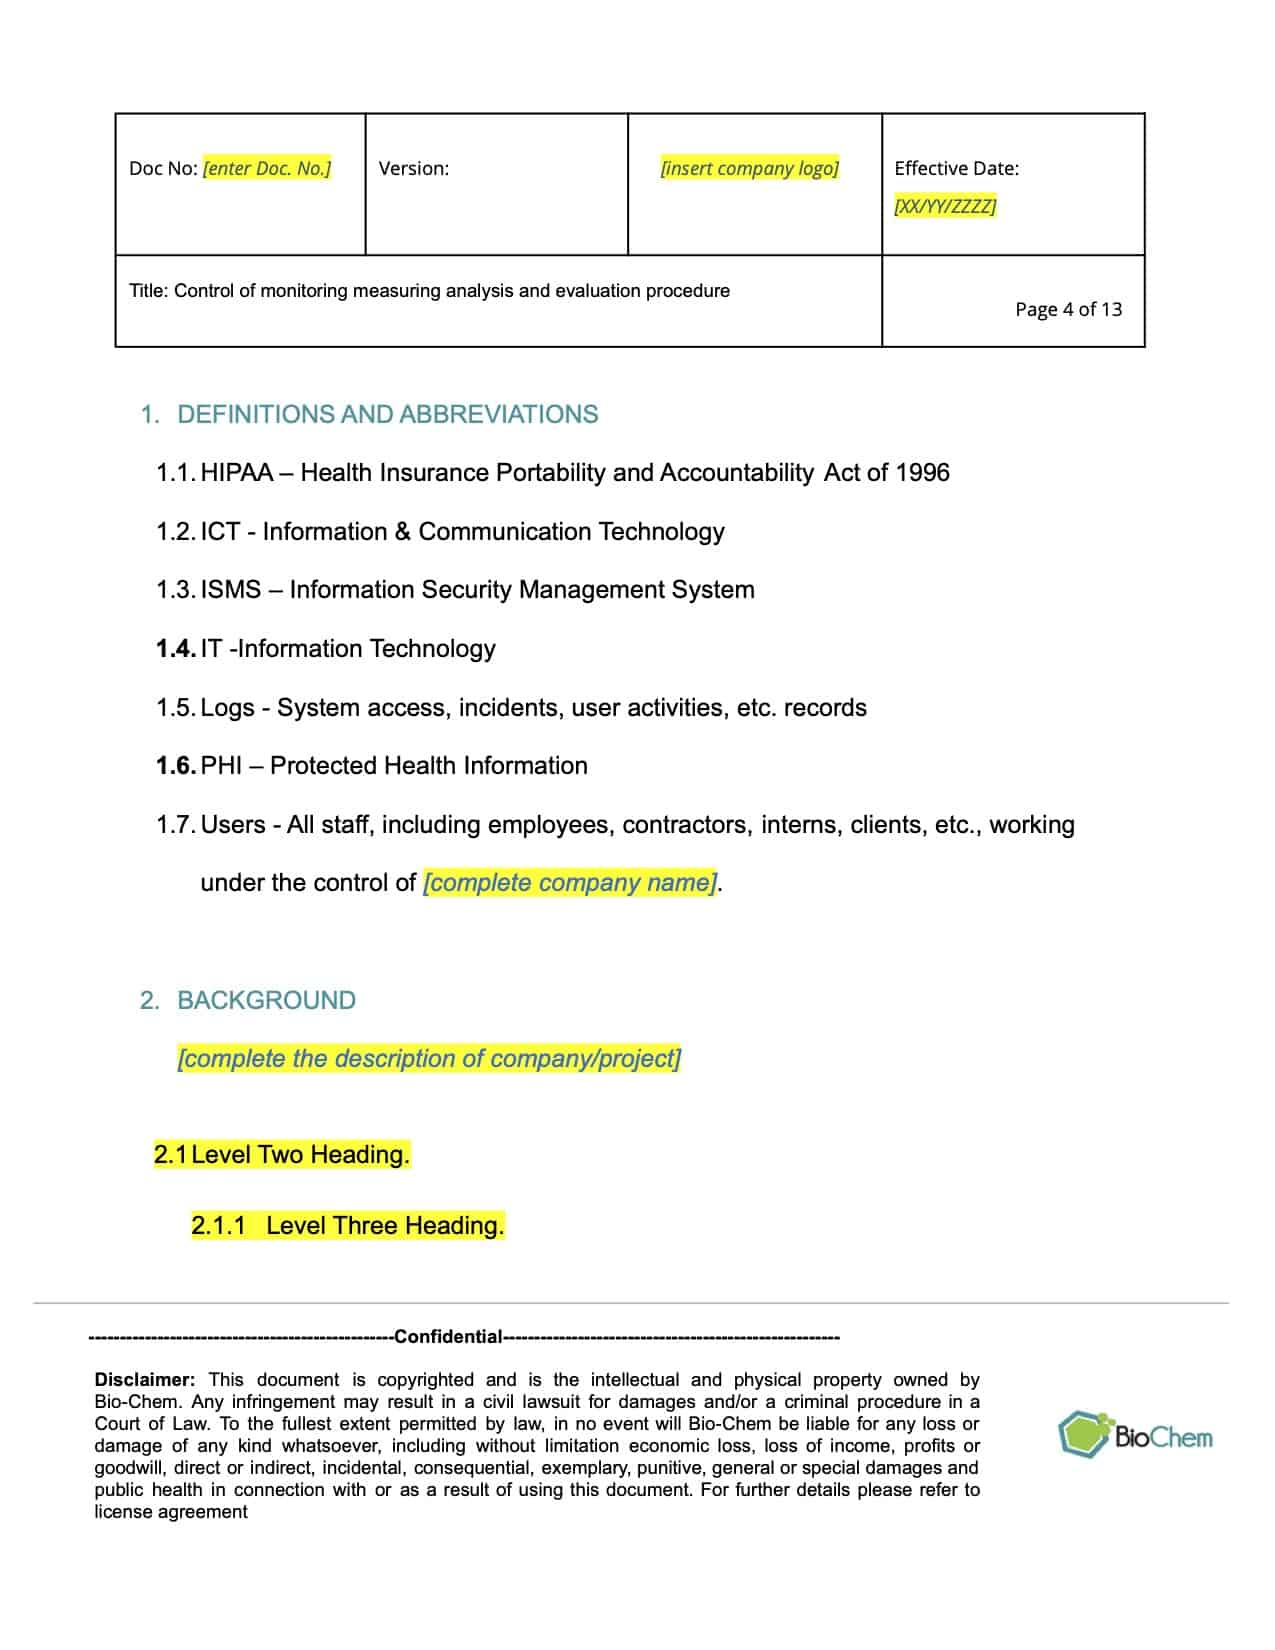 Control of Monitoring Measuring Analysis and Evaluation_BioChem_ISMS_Template preview 4